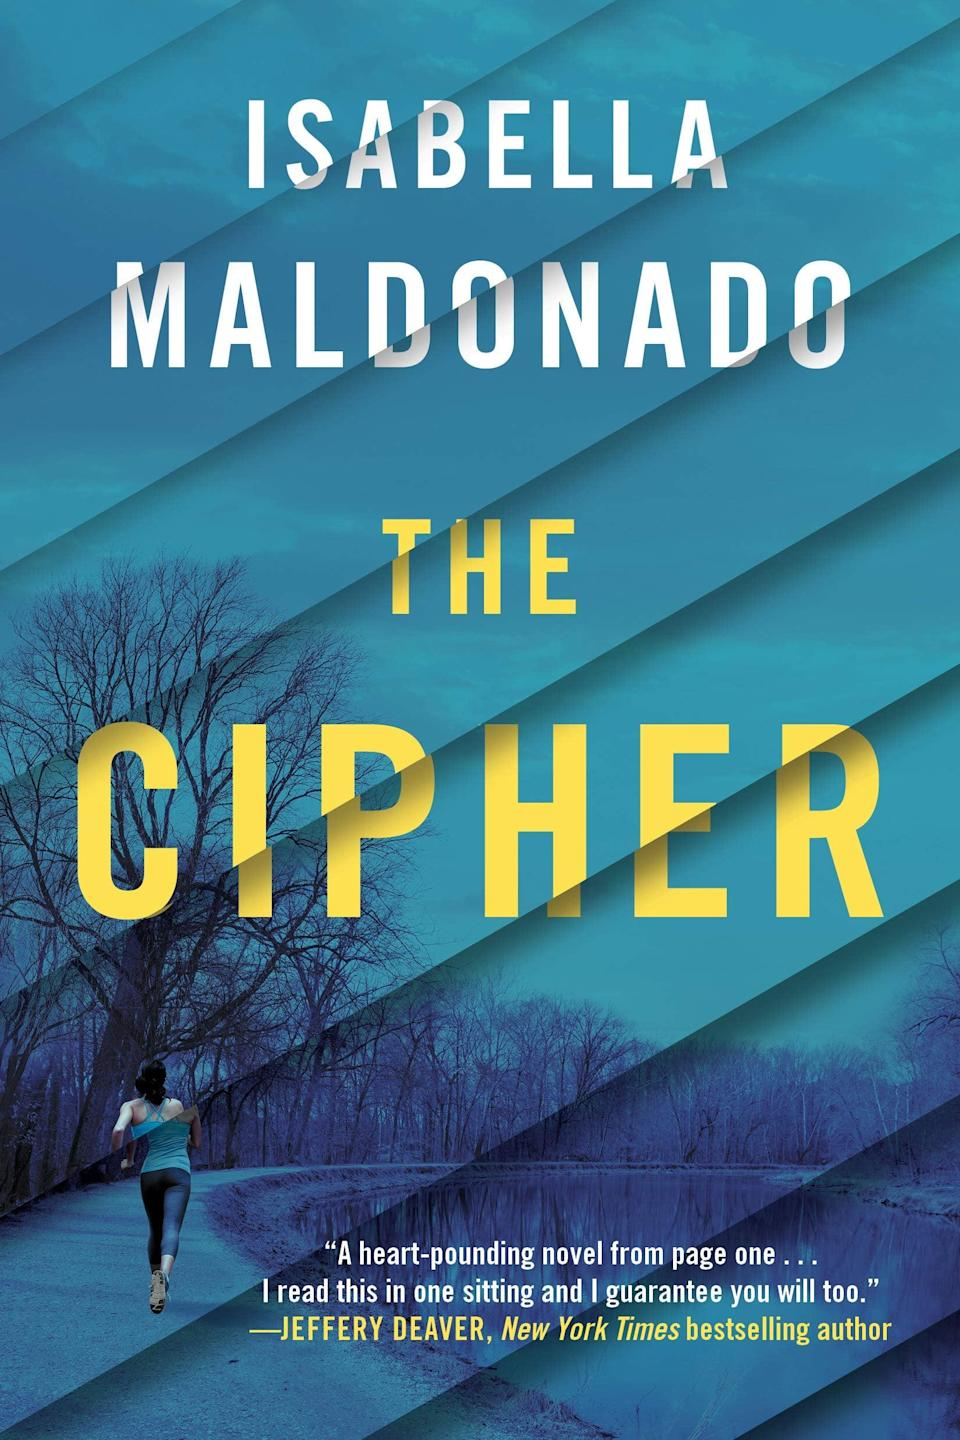 <p><span><strong>The Cipher</strong></span> by Isabella Maldonado is a nail-biting race against time. At age 16, FBI Special Agent Nina Guerrera was abducted by a serial killer, but she slipped his trap. Now, 11 years later, she goes viral for taking down a would-be attacker and catches the attention of the dangerous man who is still obsessing over her years later in the process. Soon the serial killer begins taking lives again and leaving behind grisly clues for Nina to follow.</p> <p><em>Out Nov. 1</em></p>